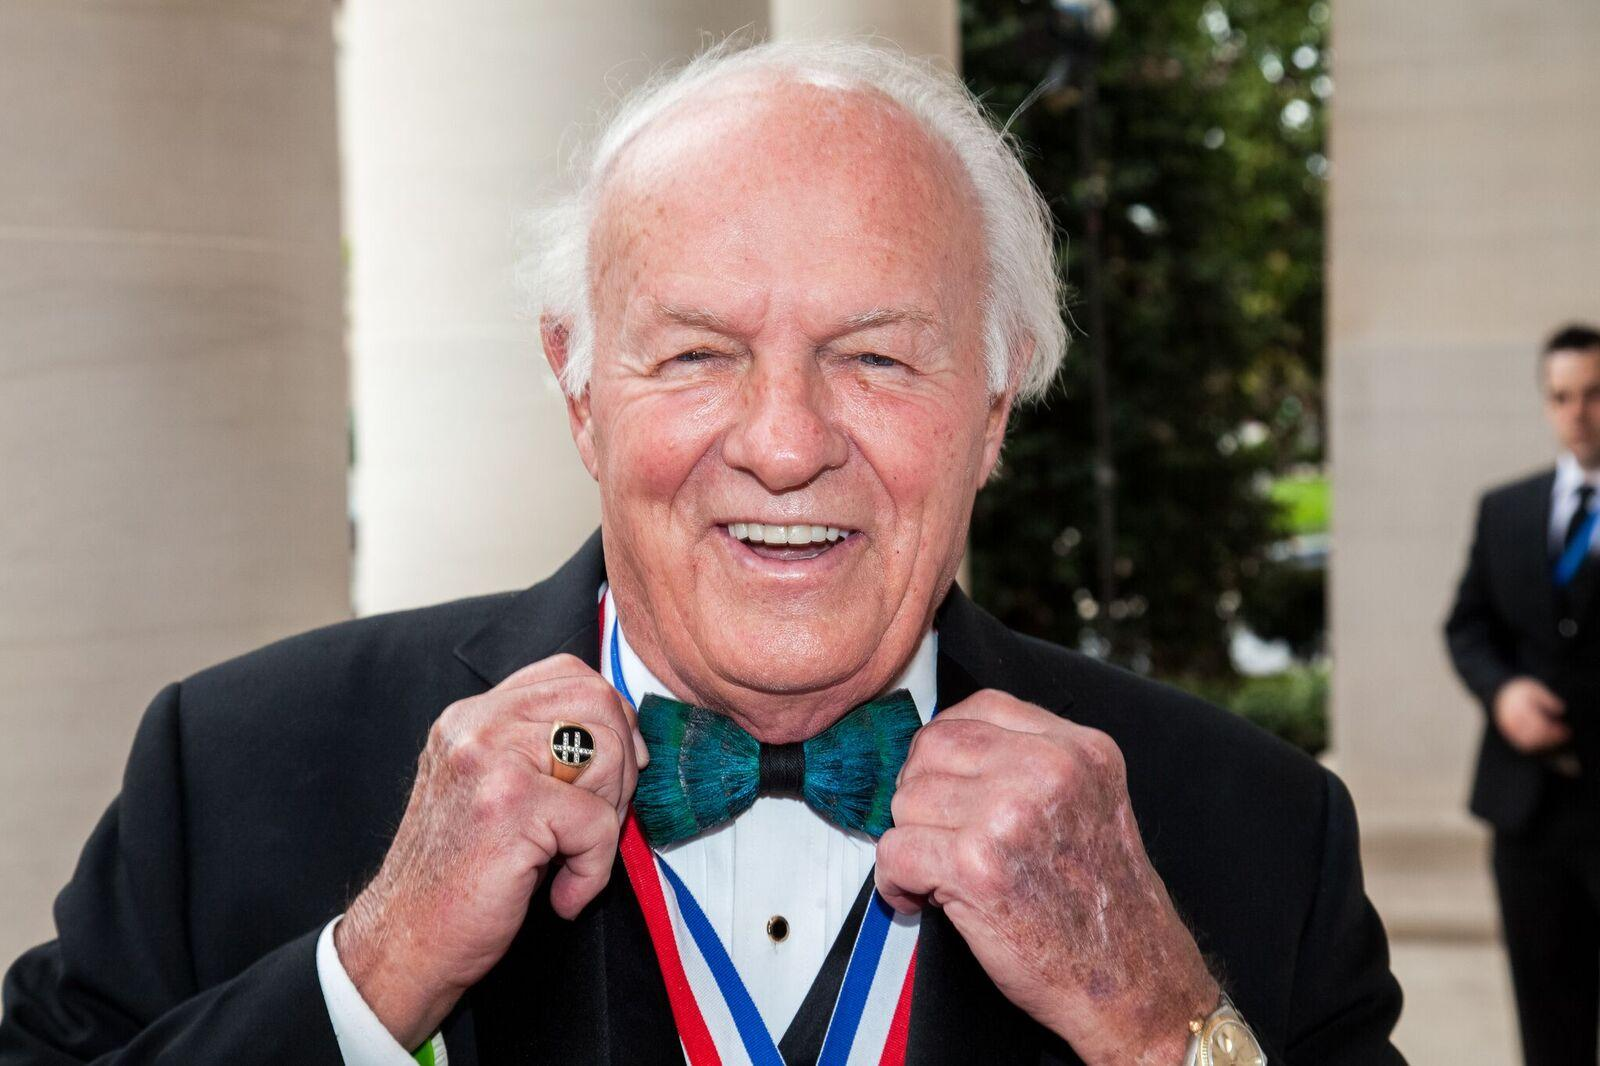 HORATIO ALGER ASSOCIATION Denny Sanford recieved an award from the Horatio Alger Association in 2016 in recognition of his philanthropy. $30 million is the largest single gift they have received.